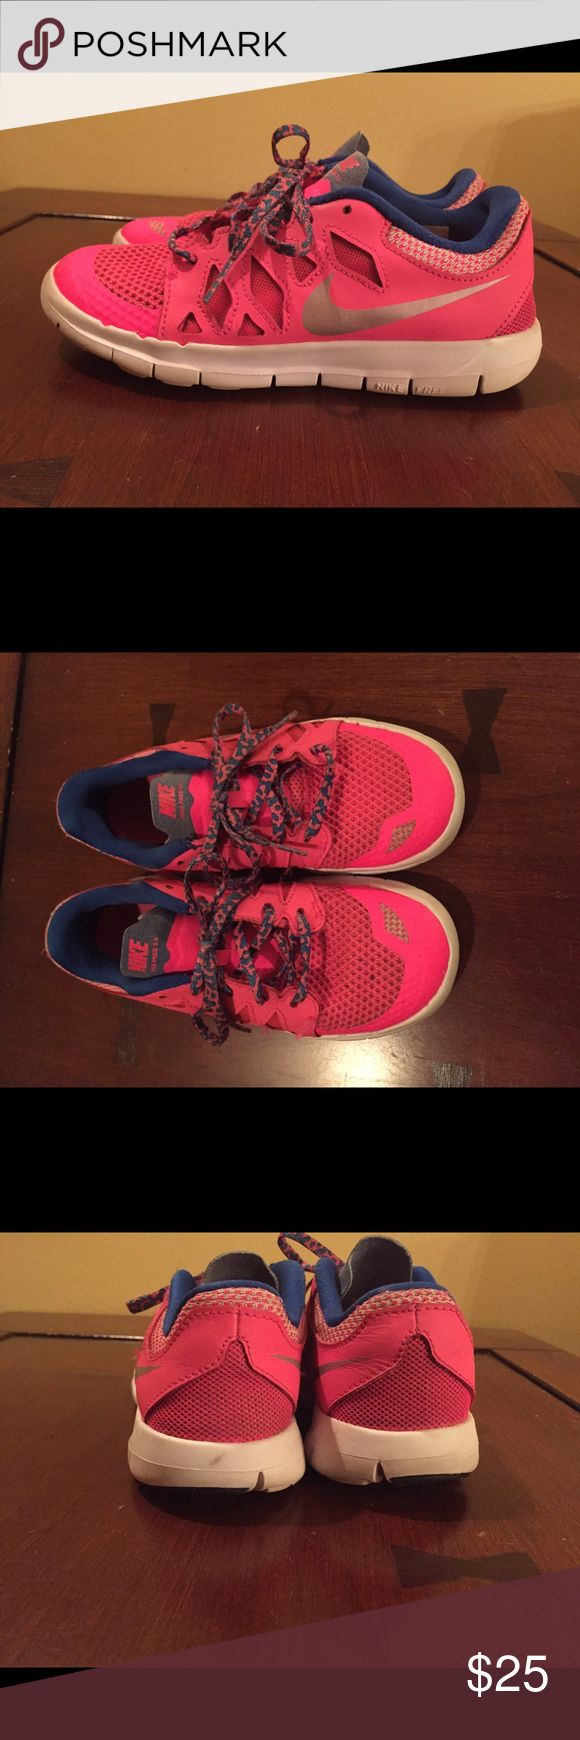 Pink Nike sneakers Pink low top Nike sneakers. Used but still in good condition. Nike Shoes Sneakers